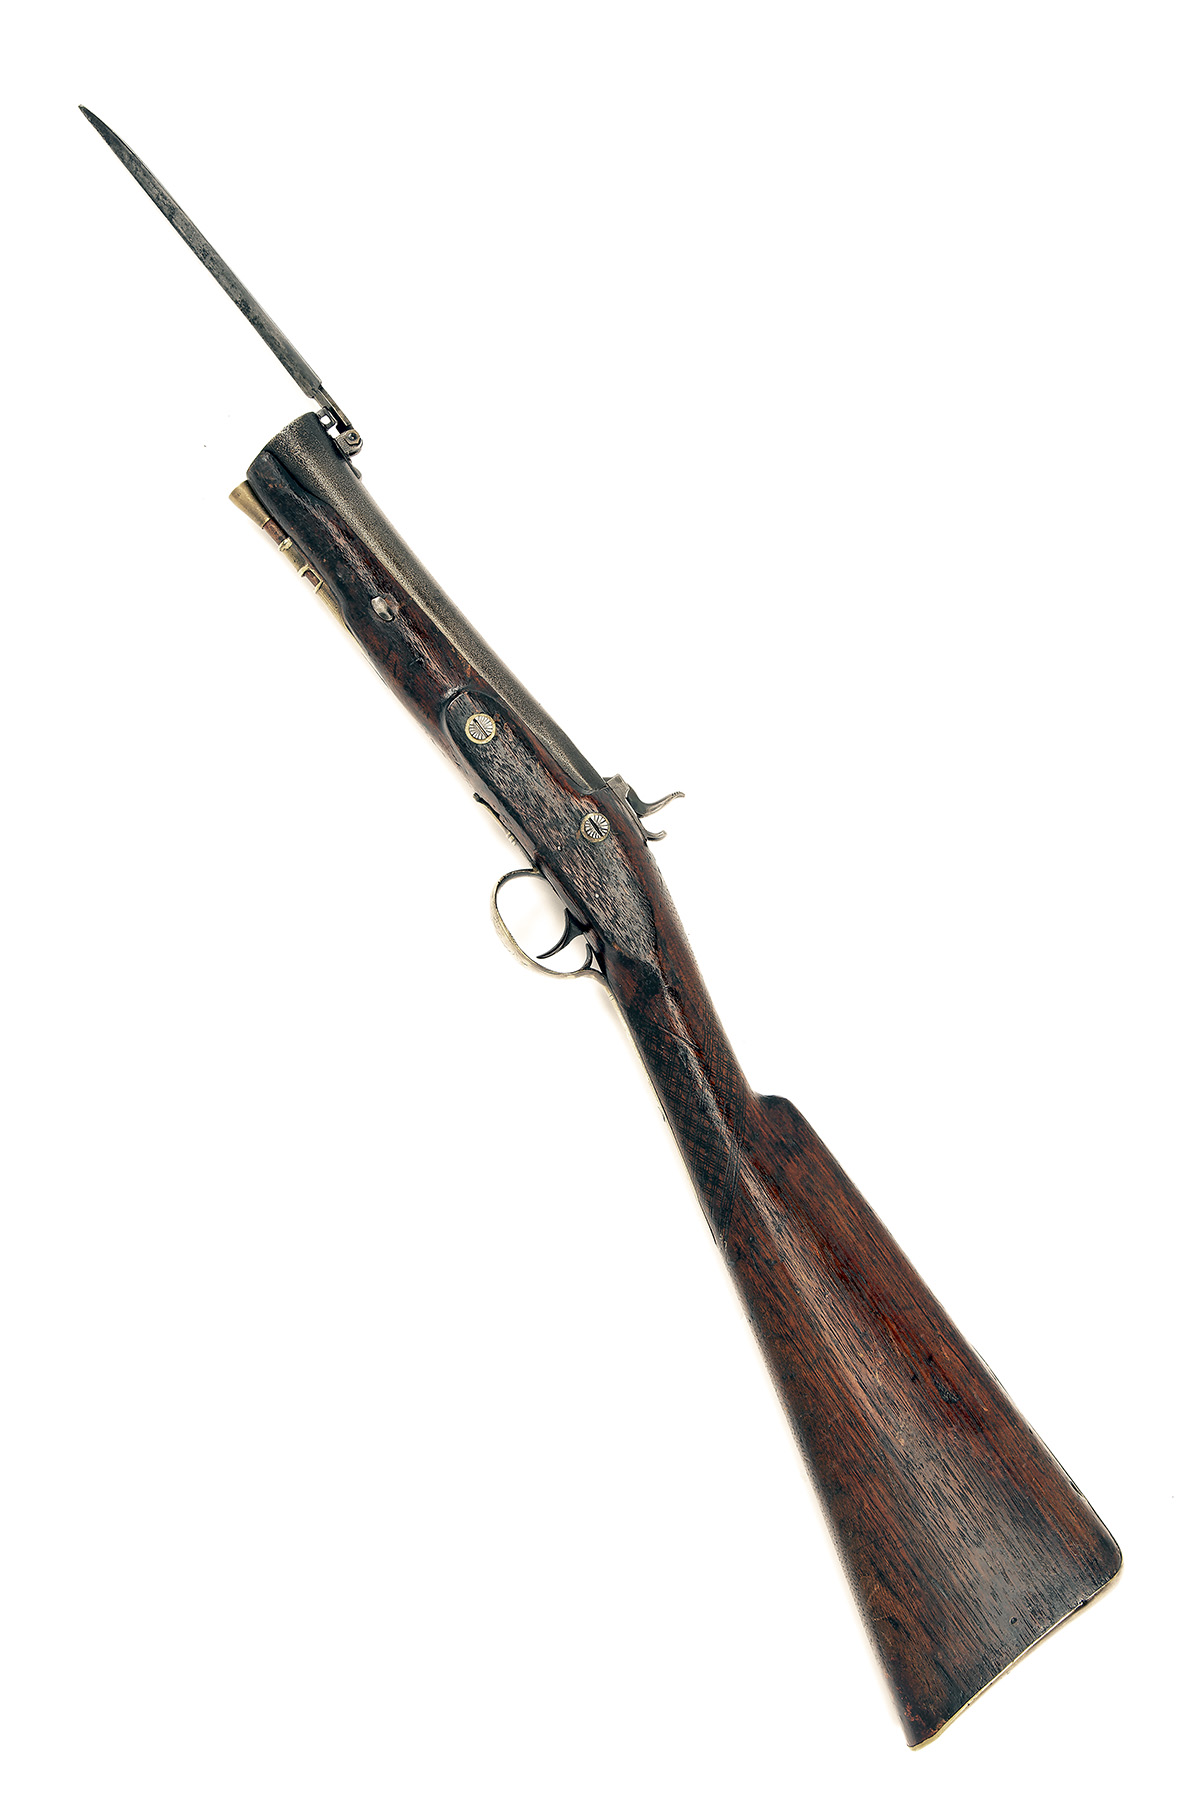 A 28-BORE PERCUSSION IRON-BARRELLED BLUNDERBUSS WITH FOLDING BAYONET SIGNED 'CONWAY', no visible - Image 2 of 5